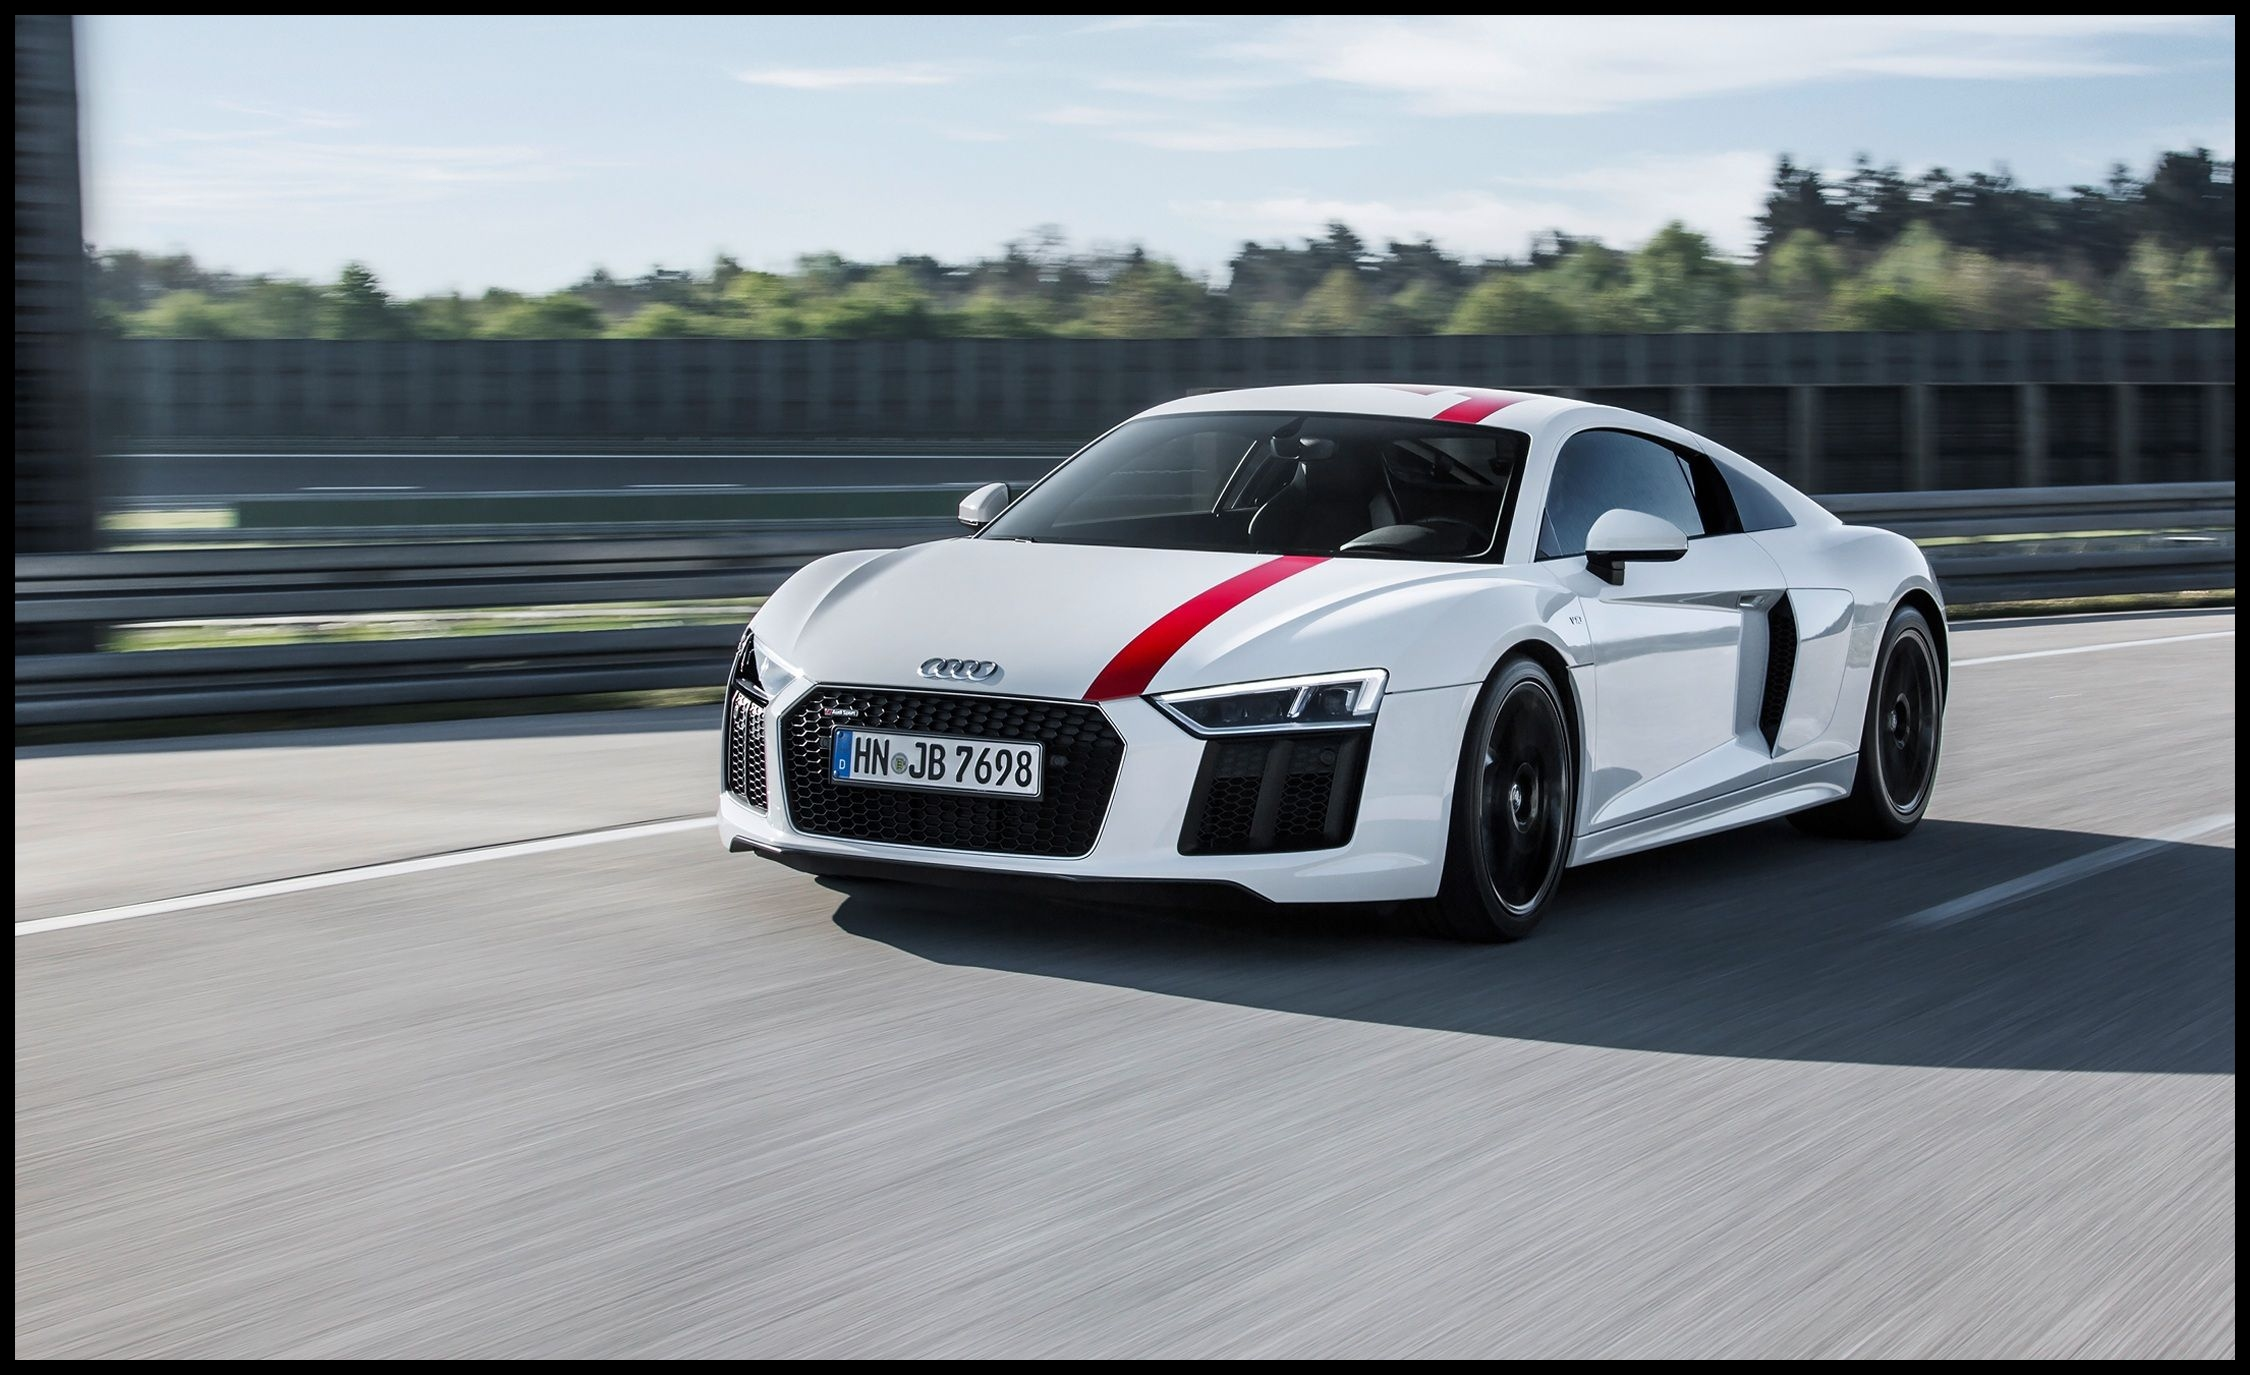 New Audi R8 Matte Black Price Audi R8 Reviews Audi R8 Price S and Specs Spy